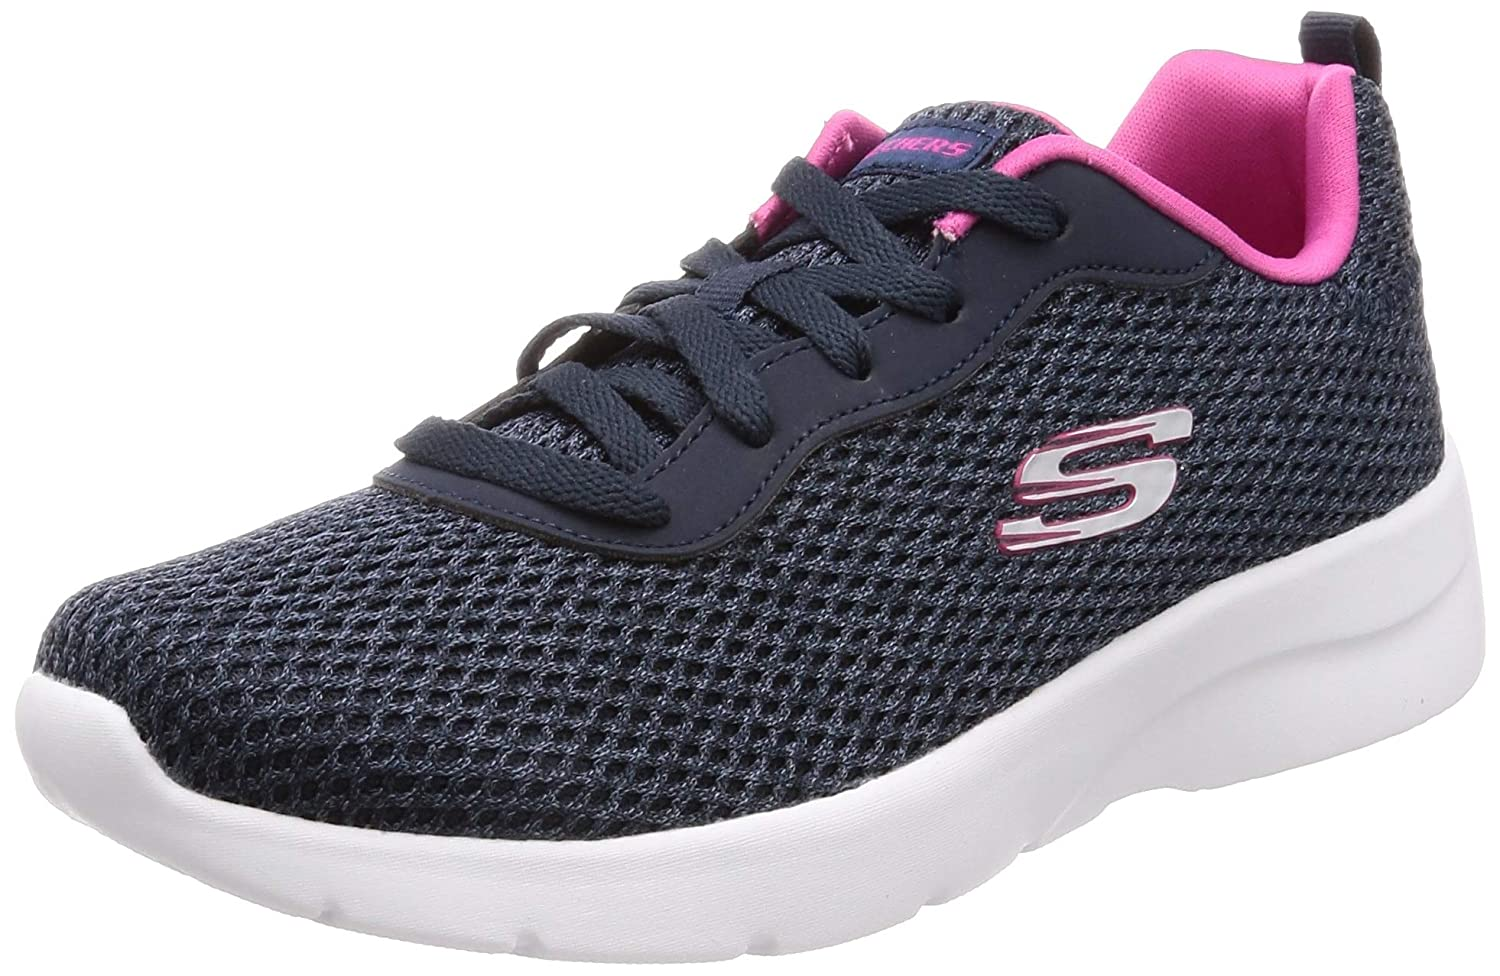 Skechers Dynamight 2.0 Quick Concept Womens Sneakers